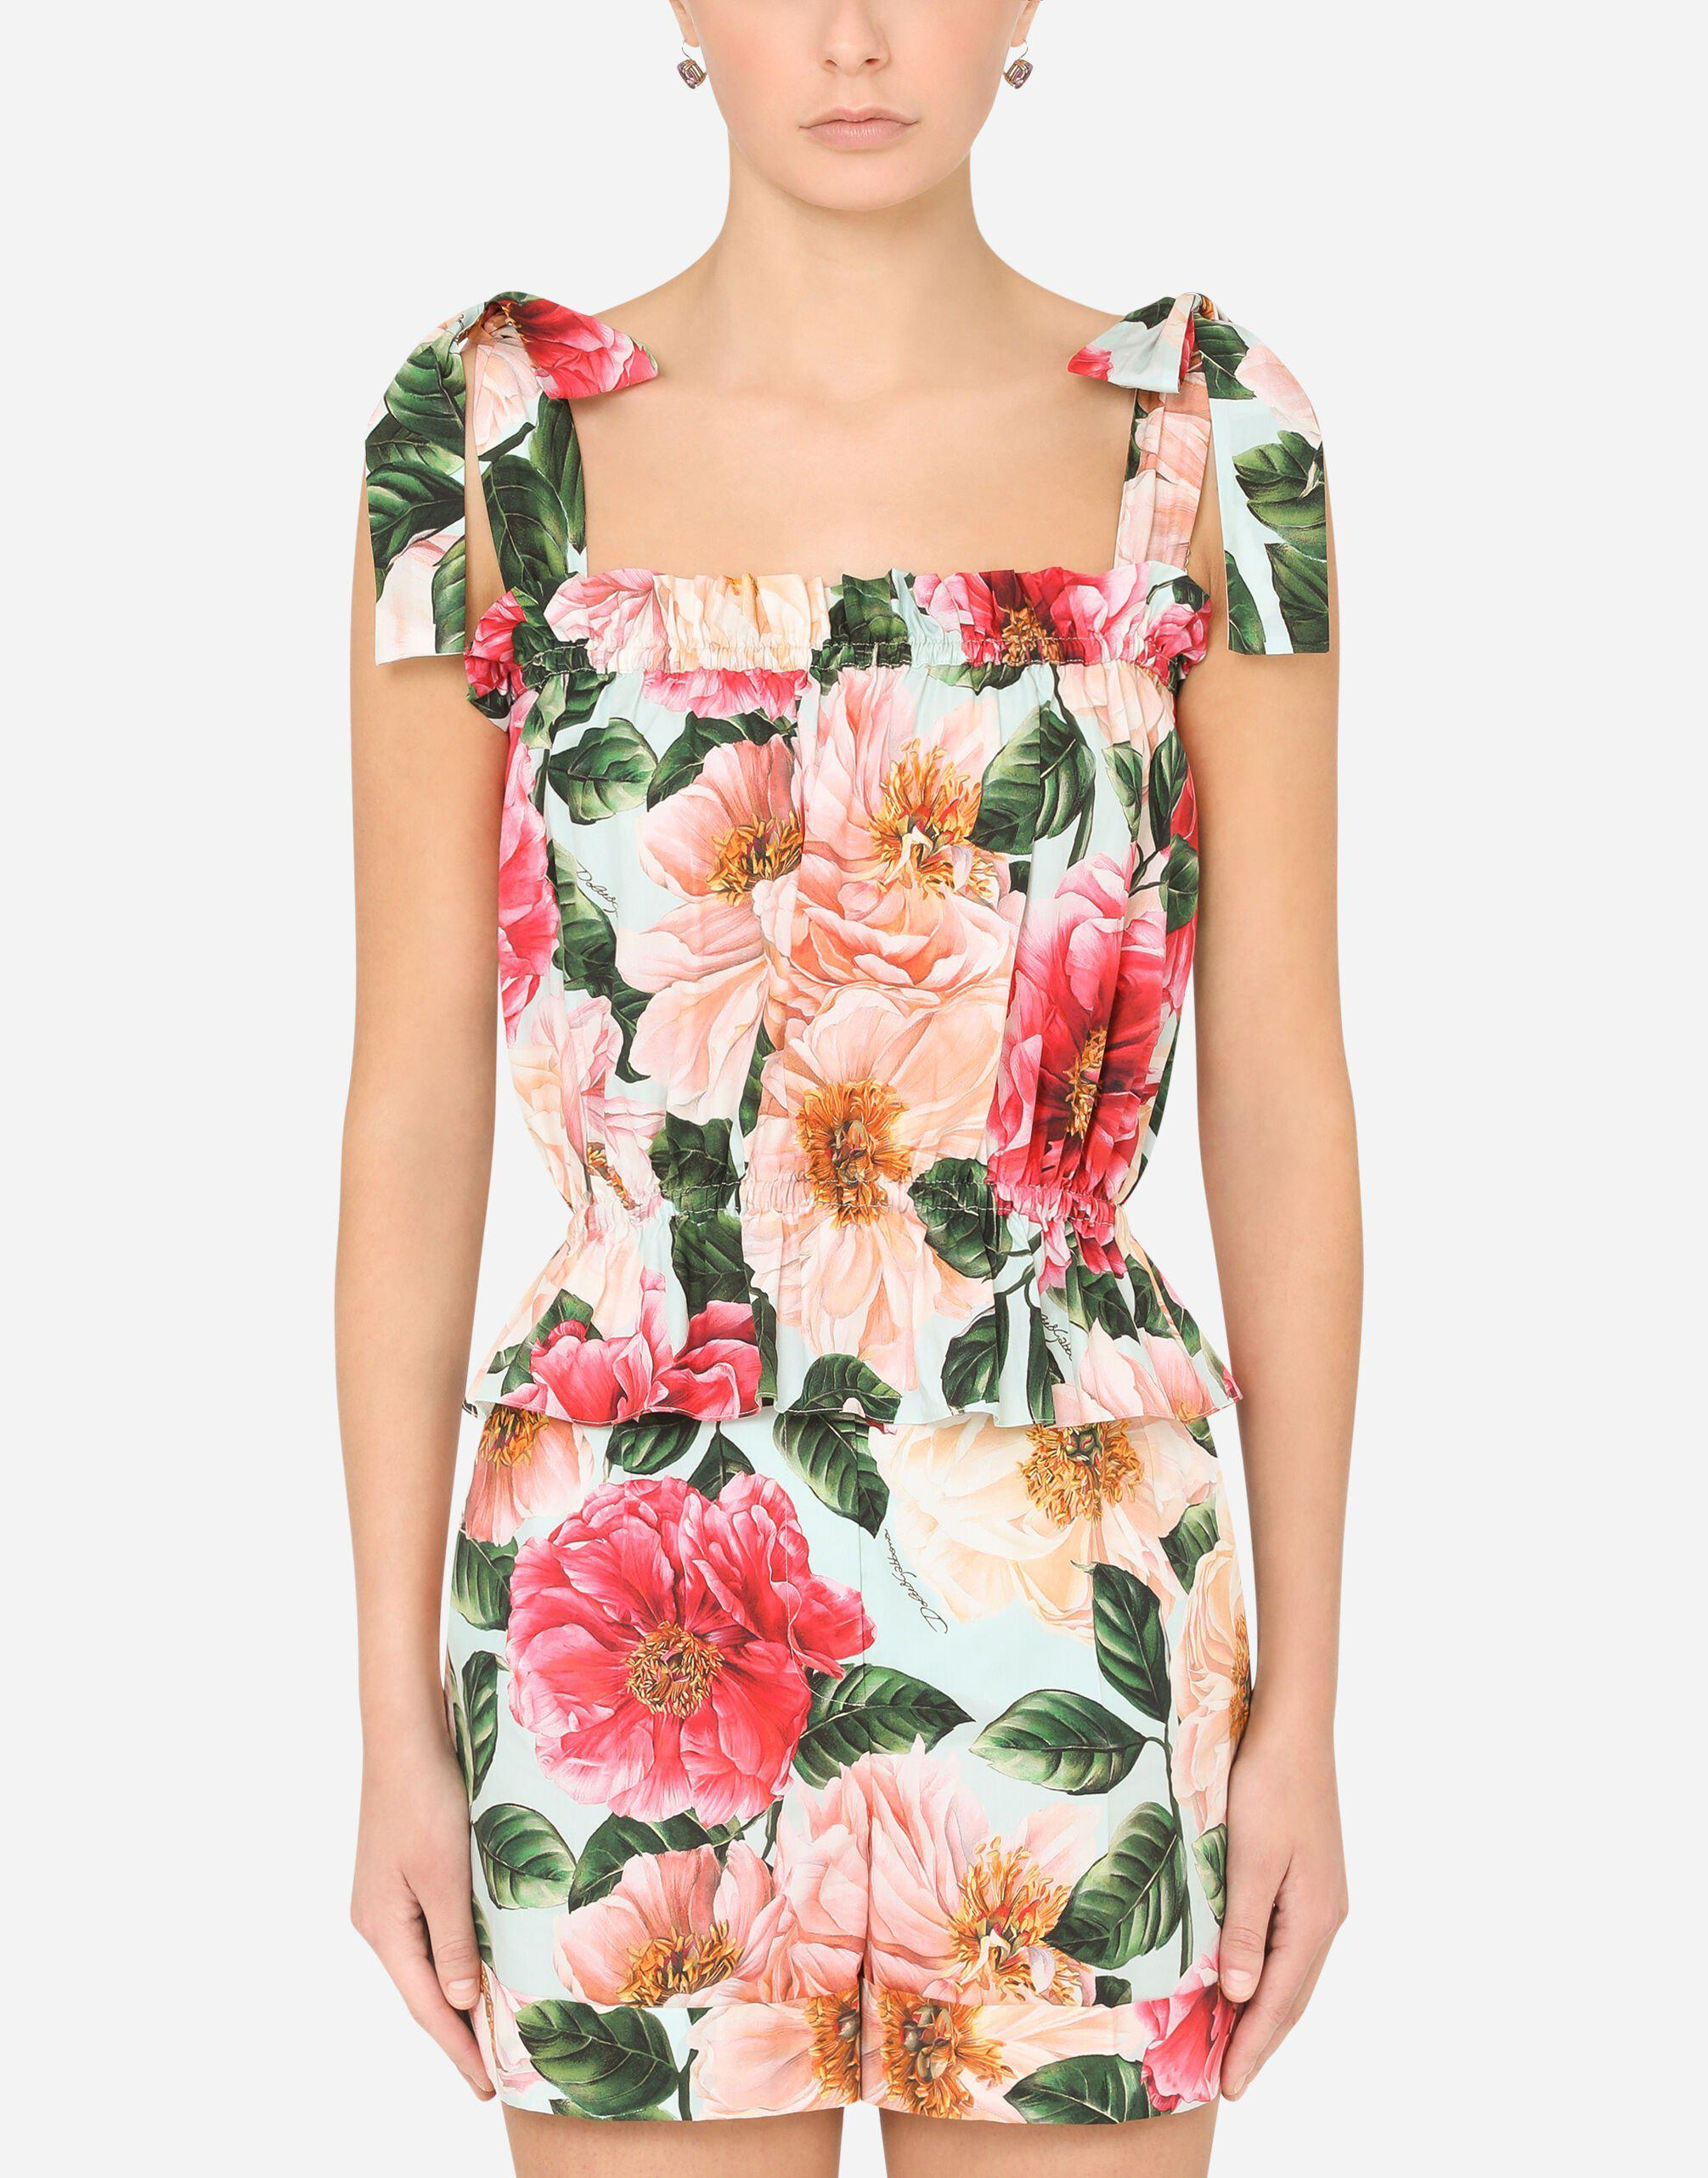 Camellia-print poplin top with bows